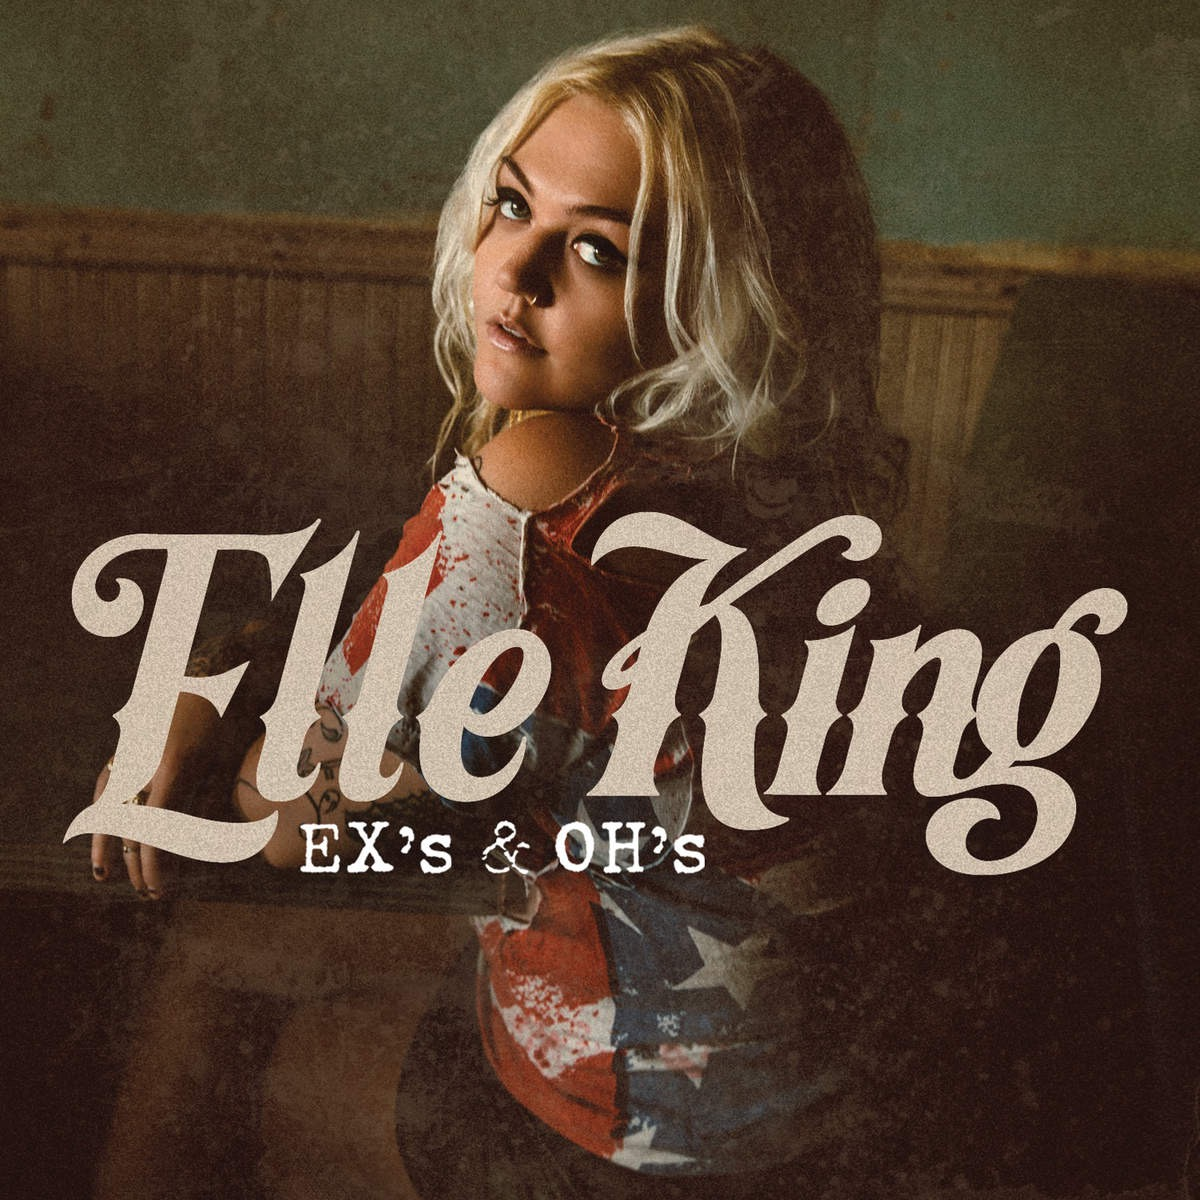 elle king ex's & oh's single cover